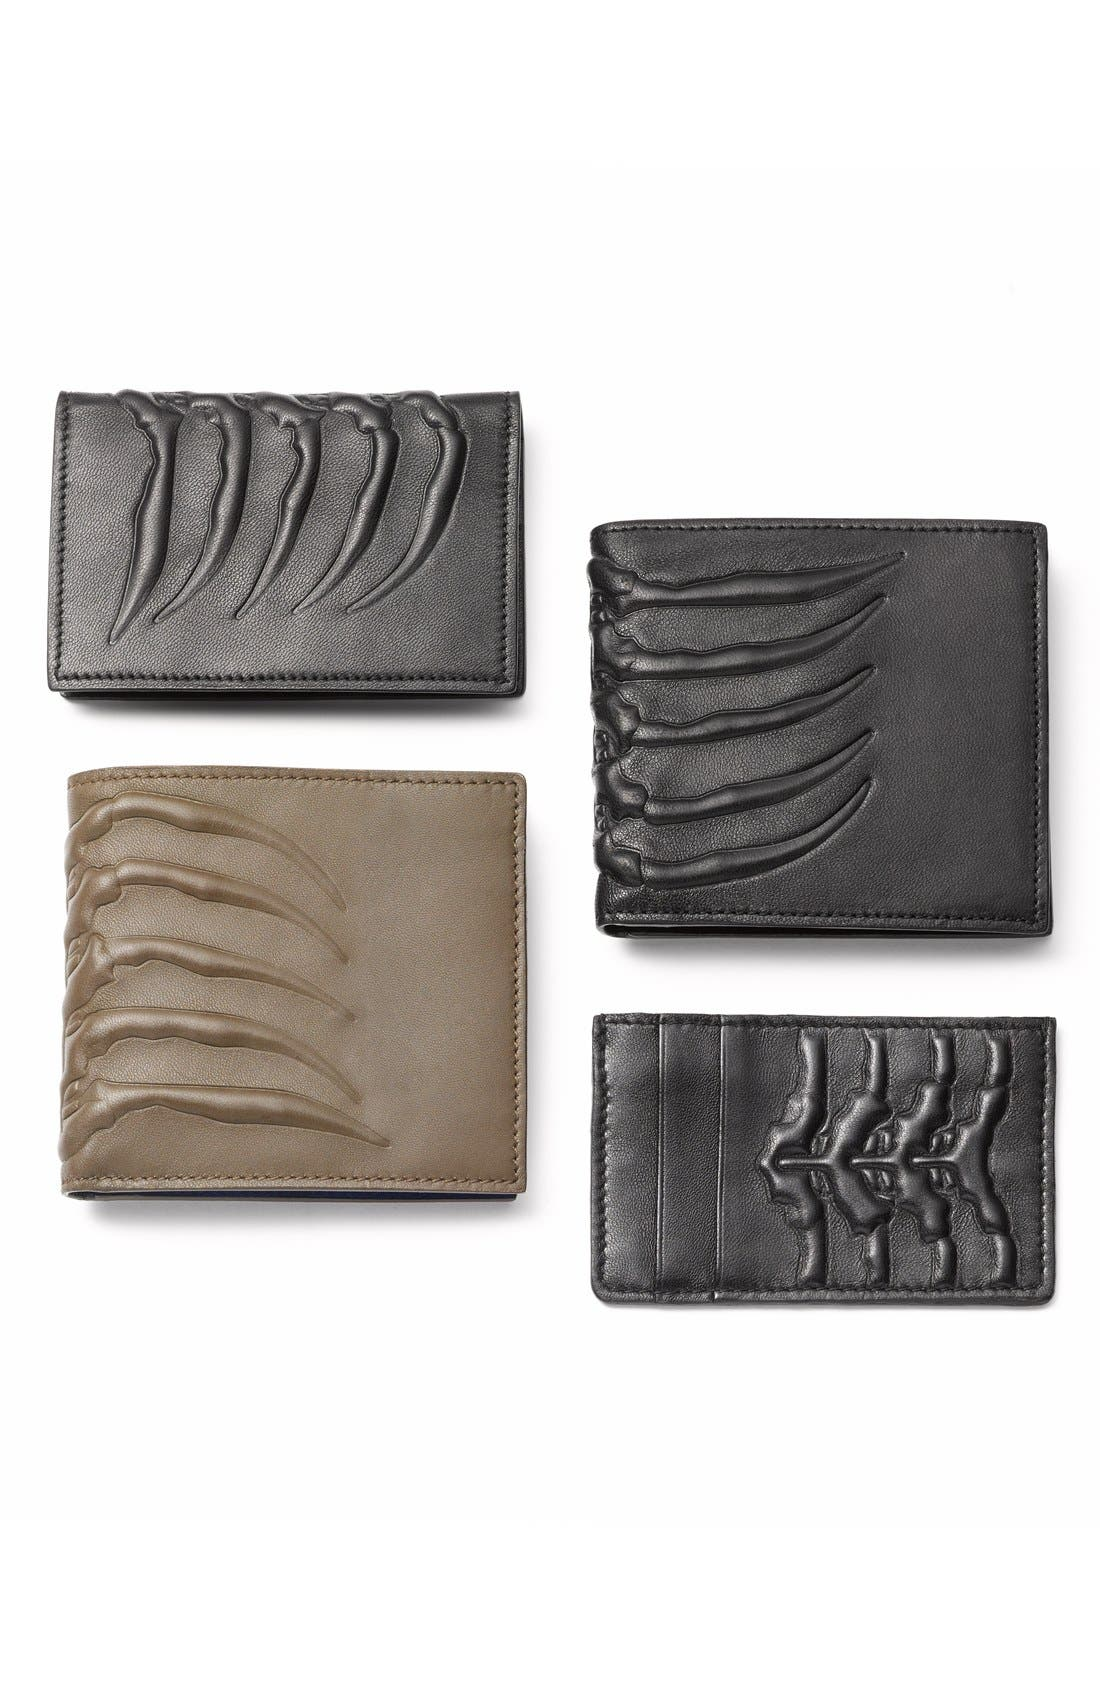 Rib Cage Leather Wallet,                             Alternate thumbnail 4, color,                             BLACK